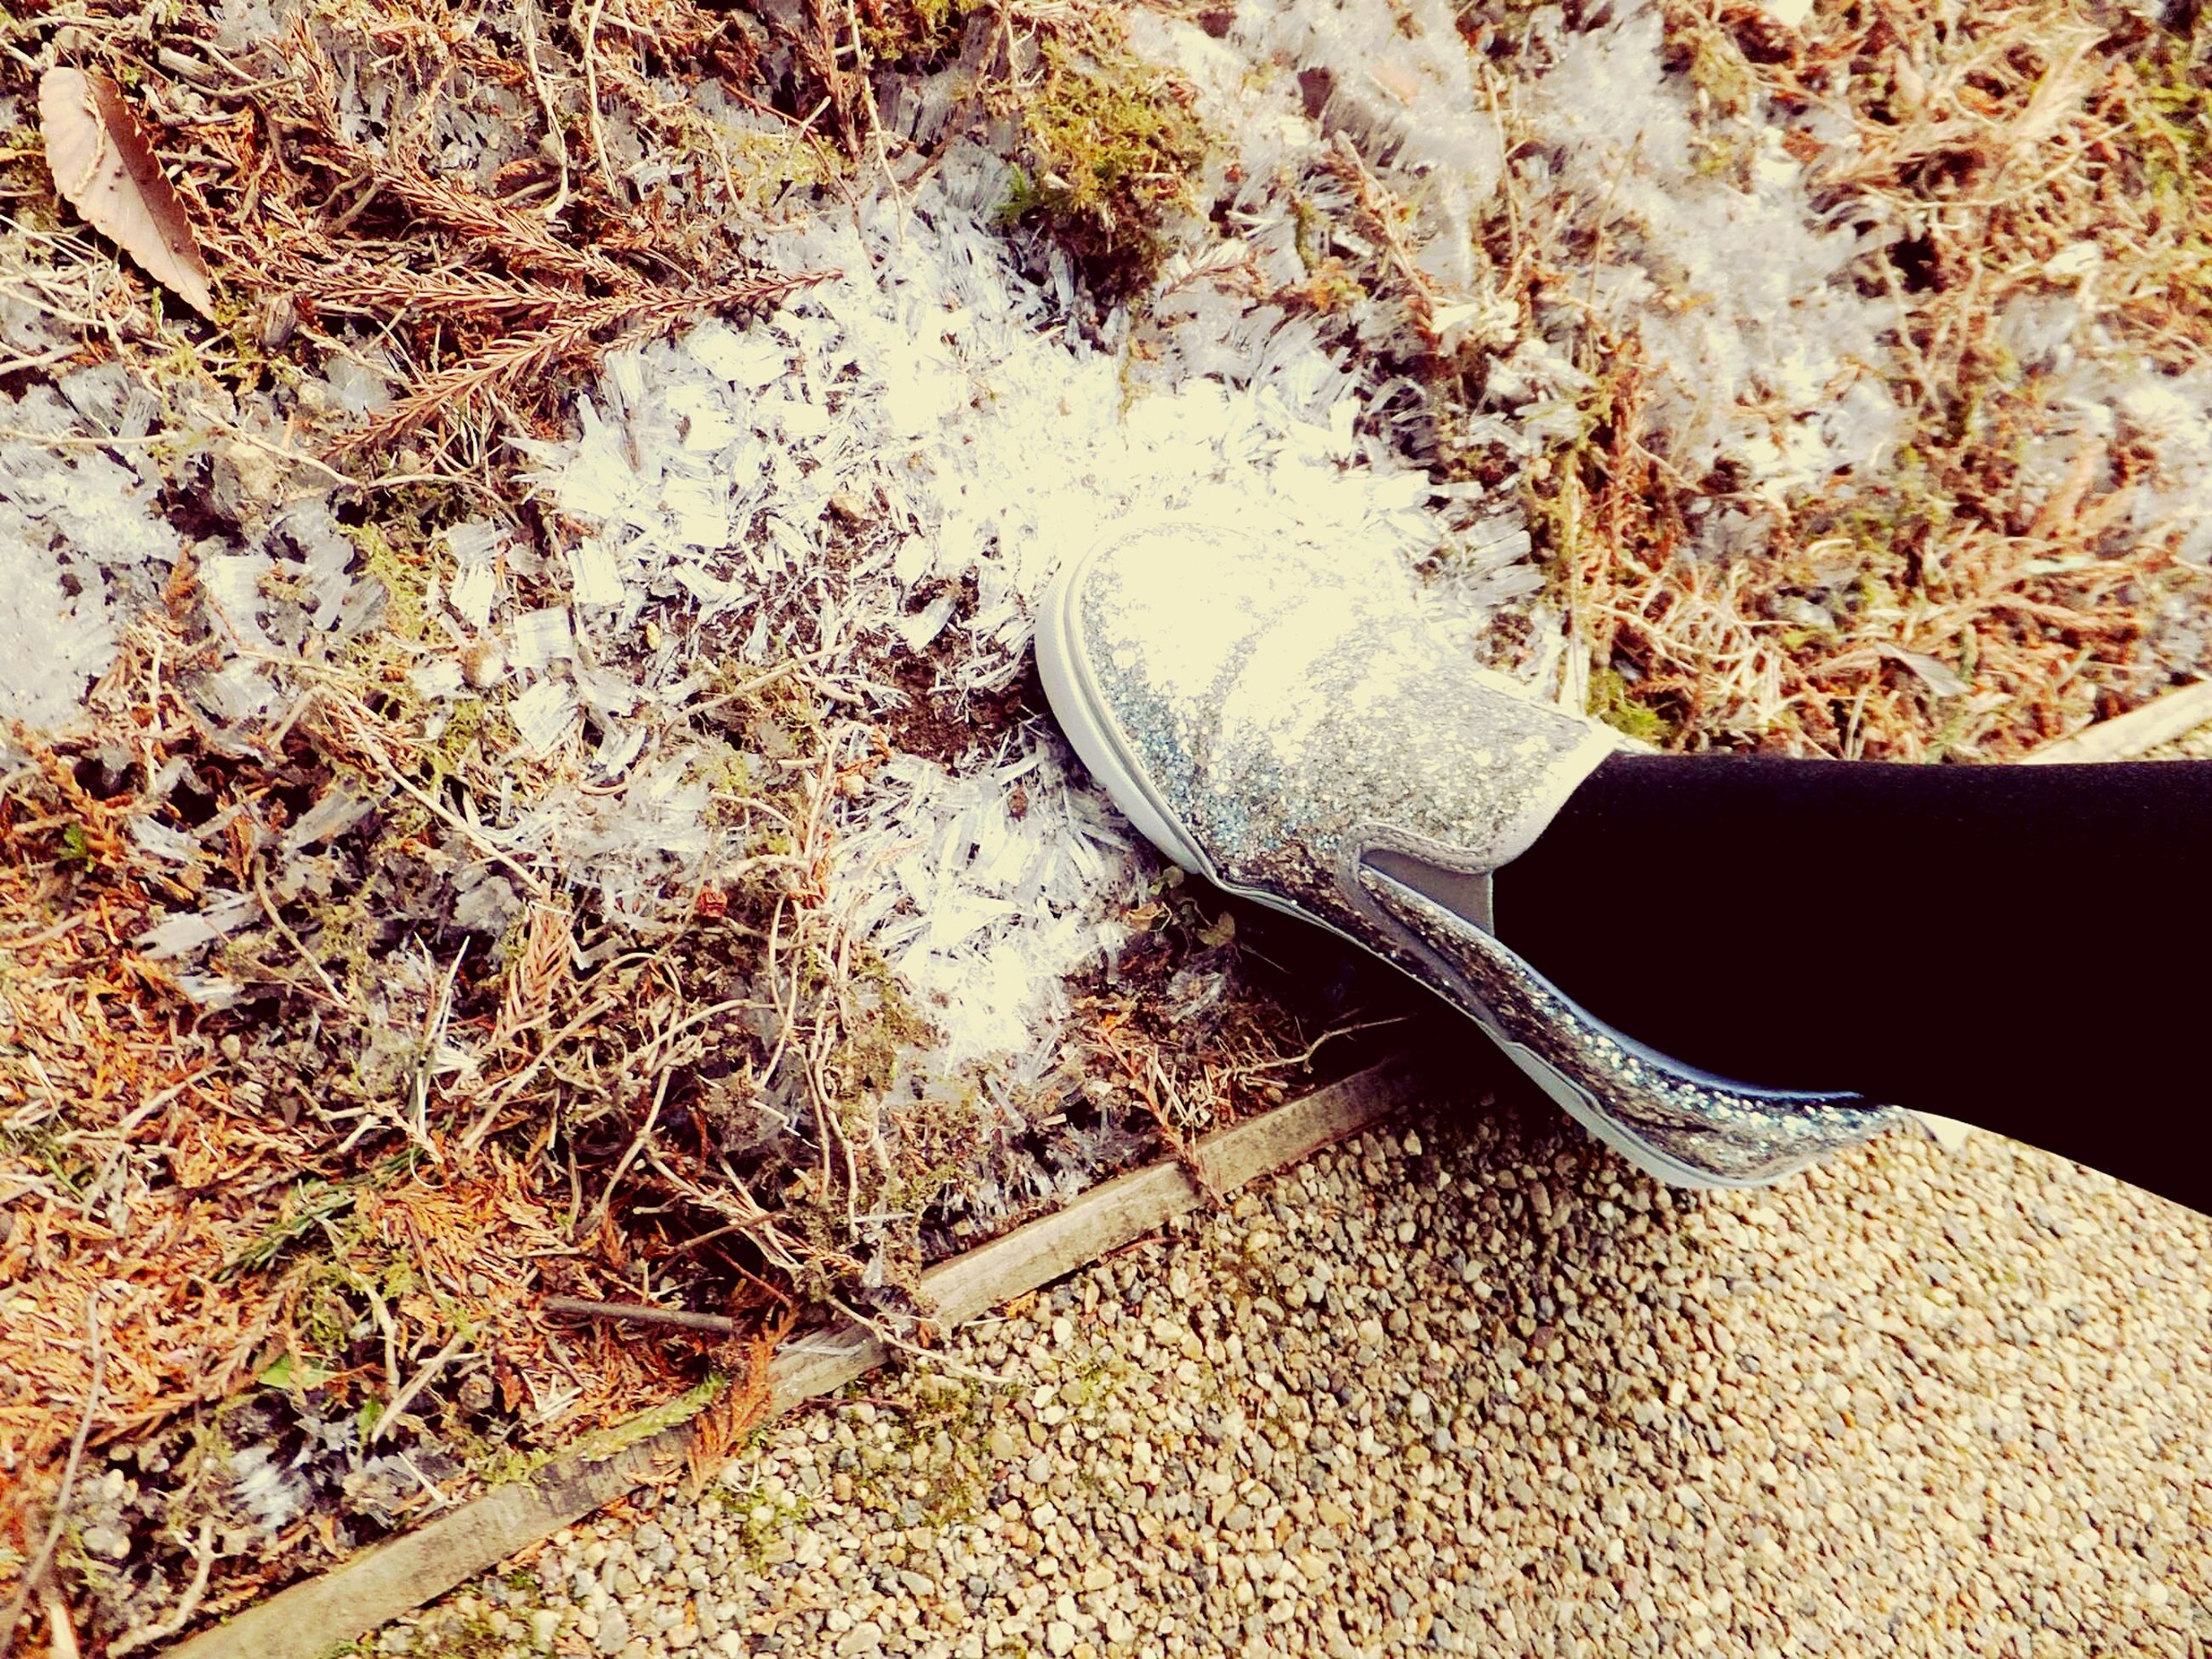 high angle view, low section, personal perspective, shoe, nature, sand, tranquility, person, outdoors, day, sunlight, part of, one person, field, dry, plant, water, shadow, close-up